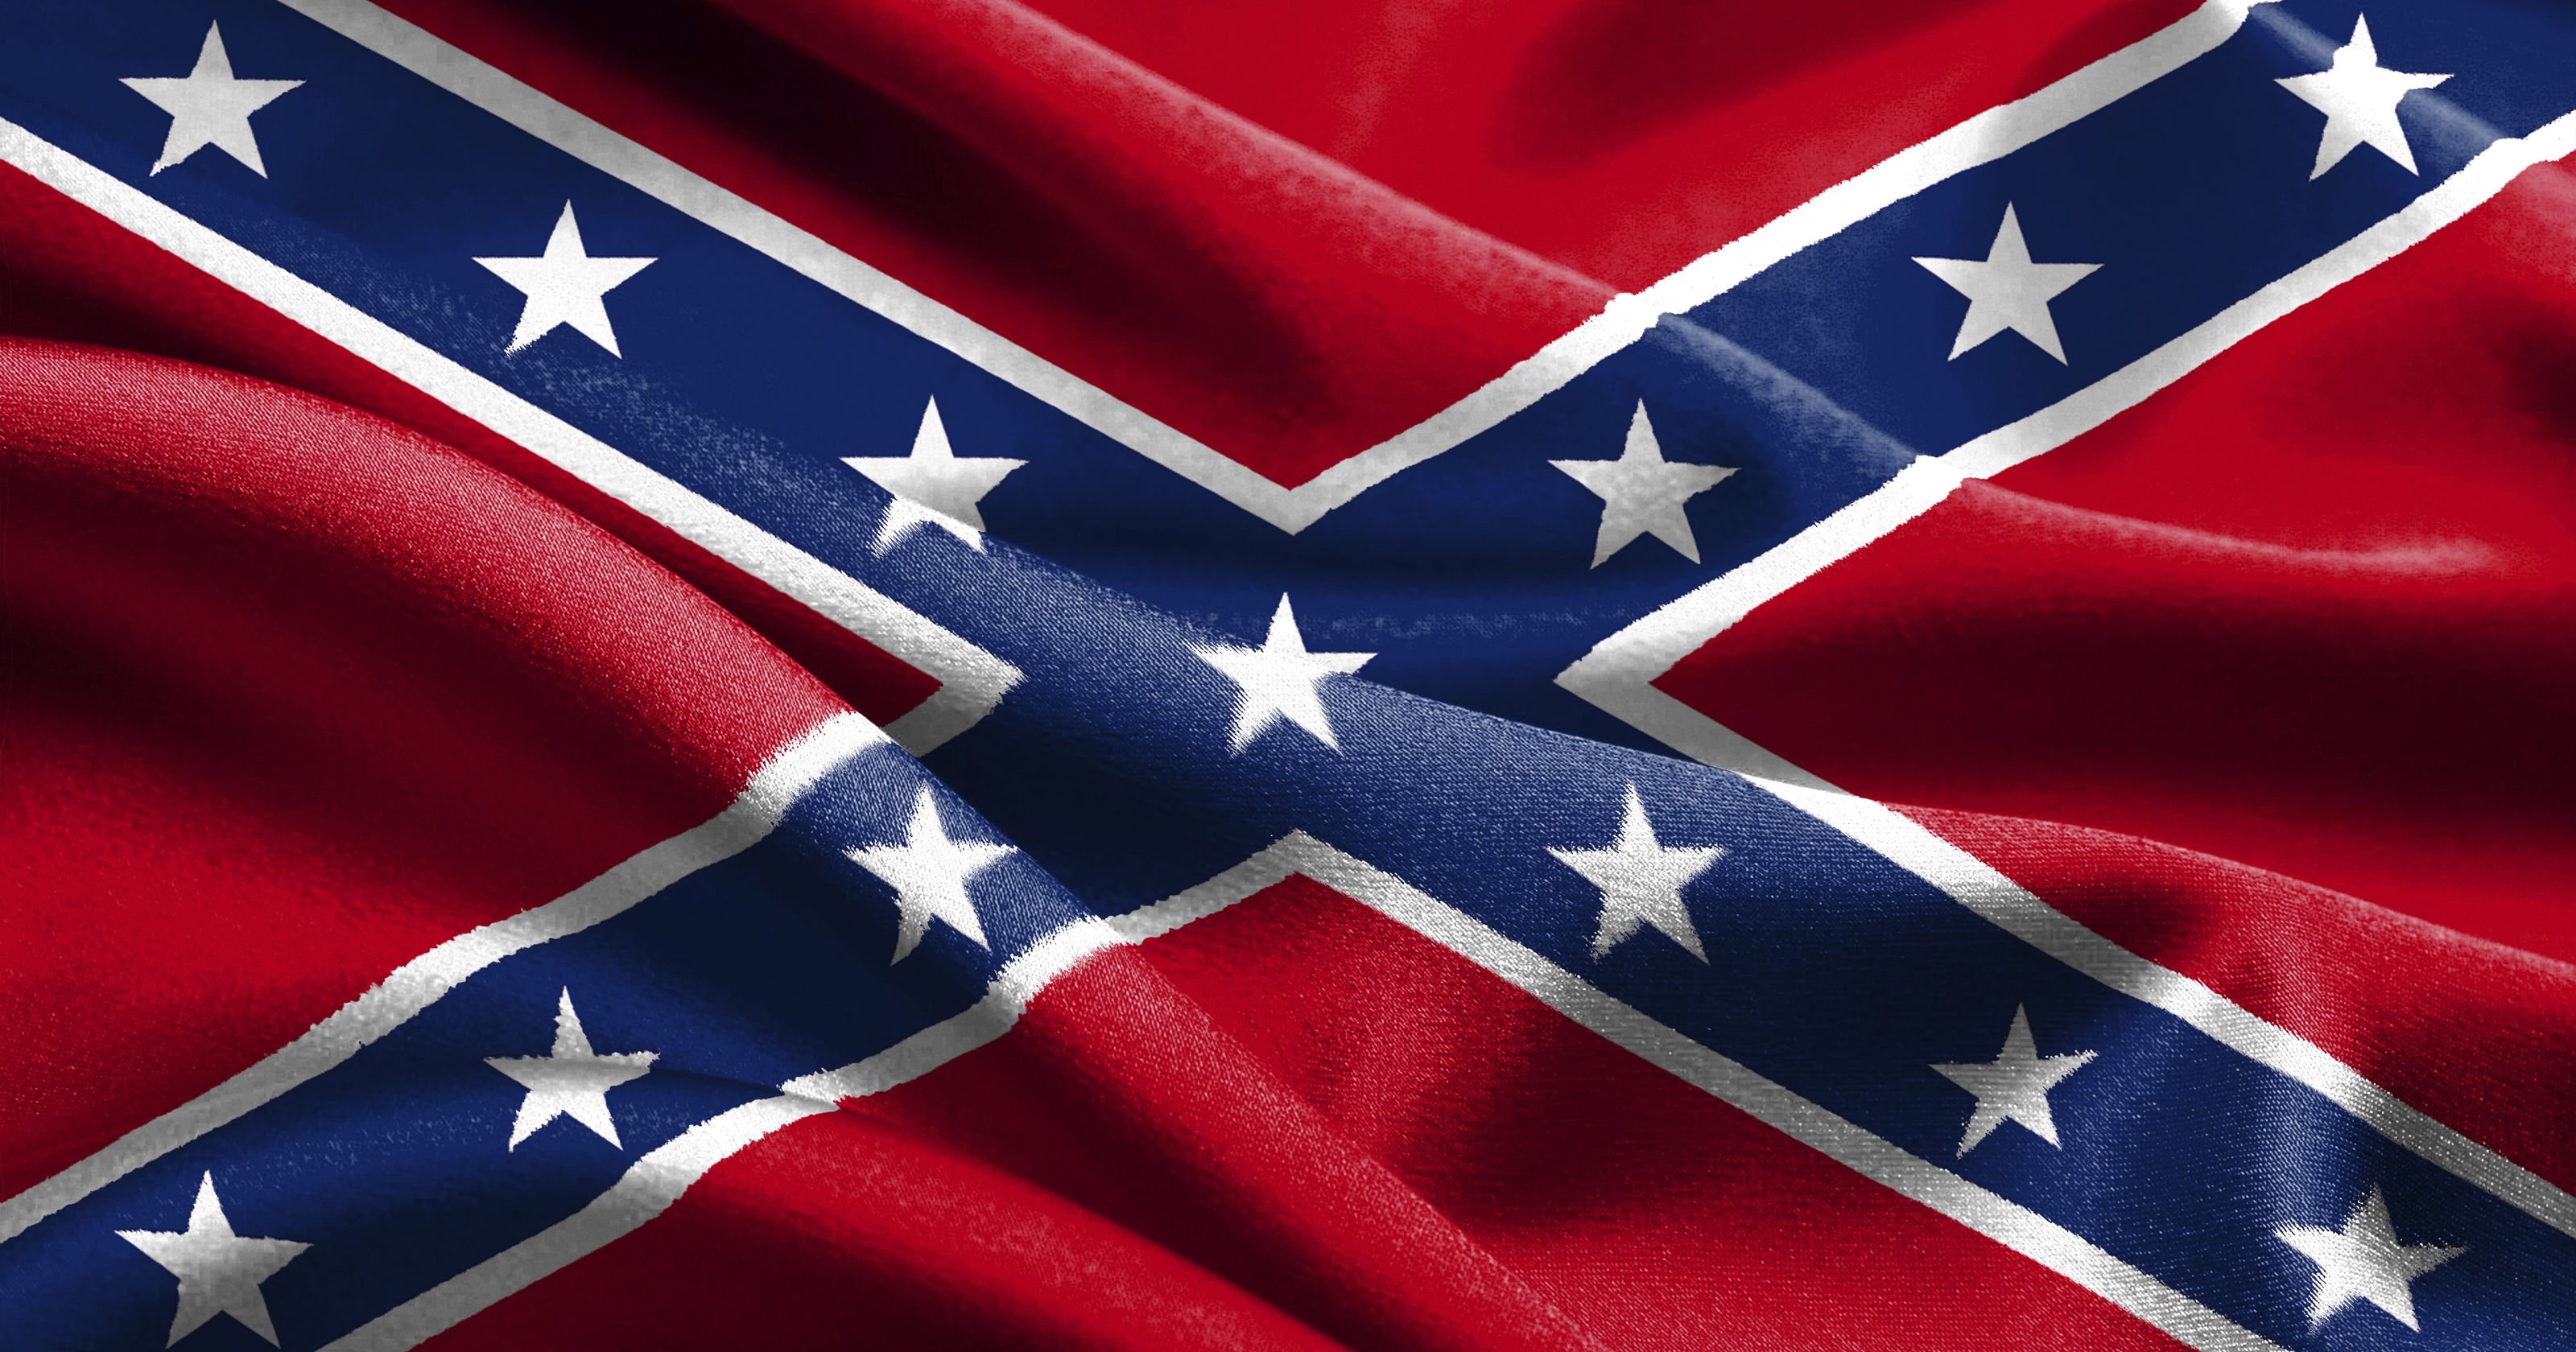 Confederate Flag Awesome Full HD Wallpaper Petaimgcom 3200x1680